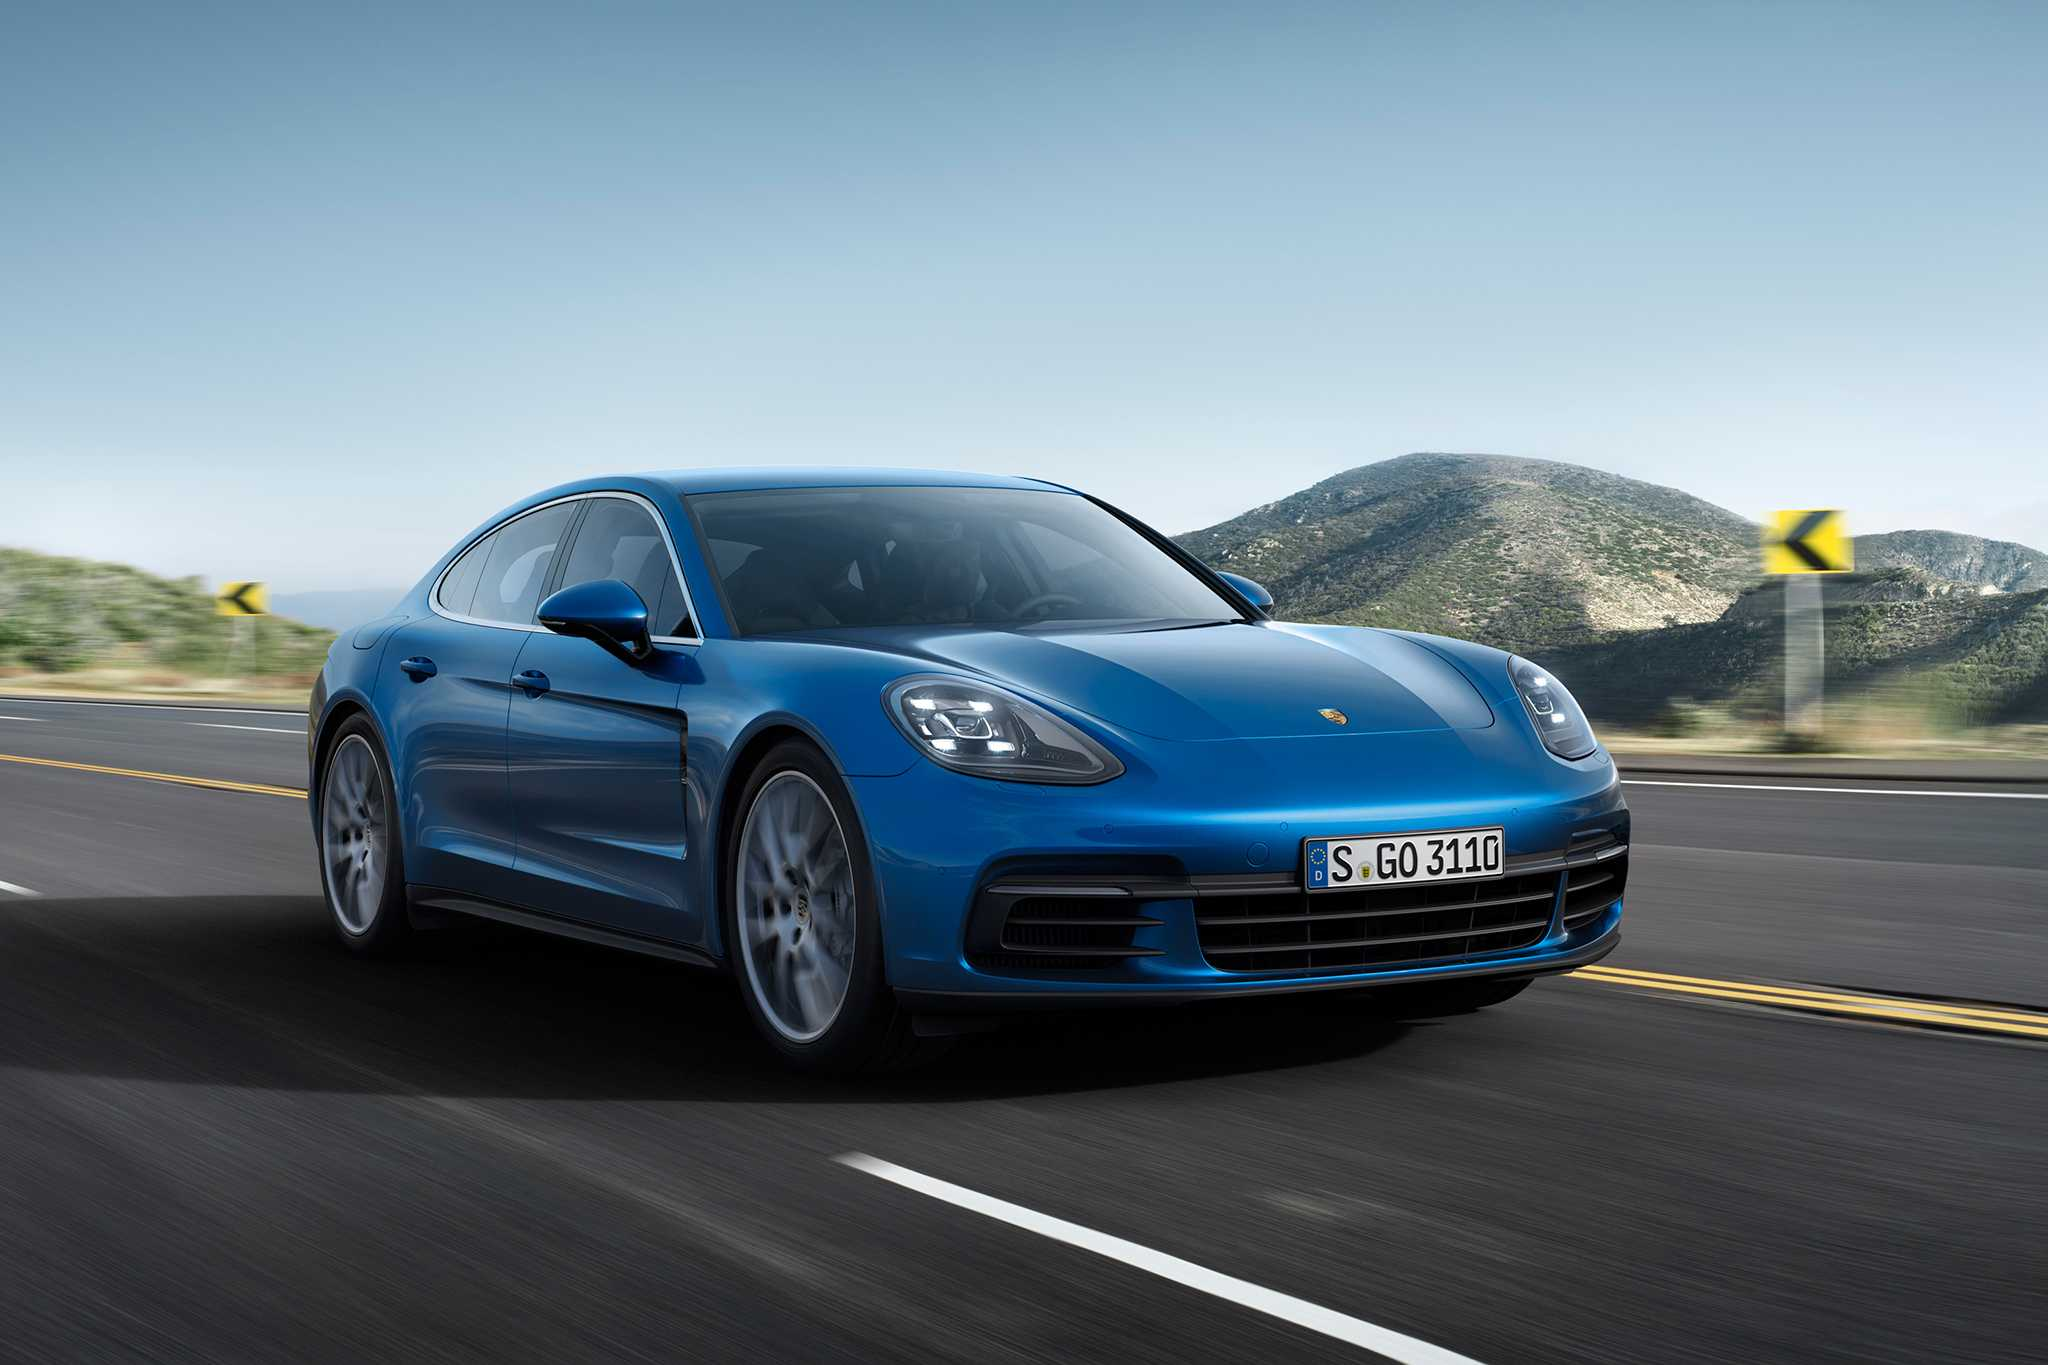 Porsche Twin Turbo V8 Engines Adopted By Audi and Bentley